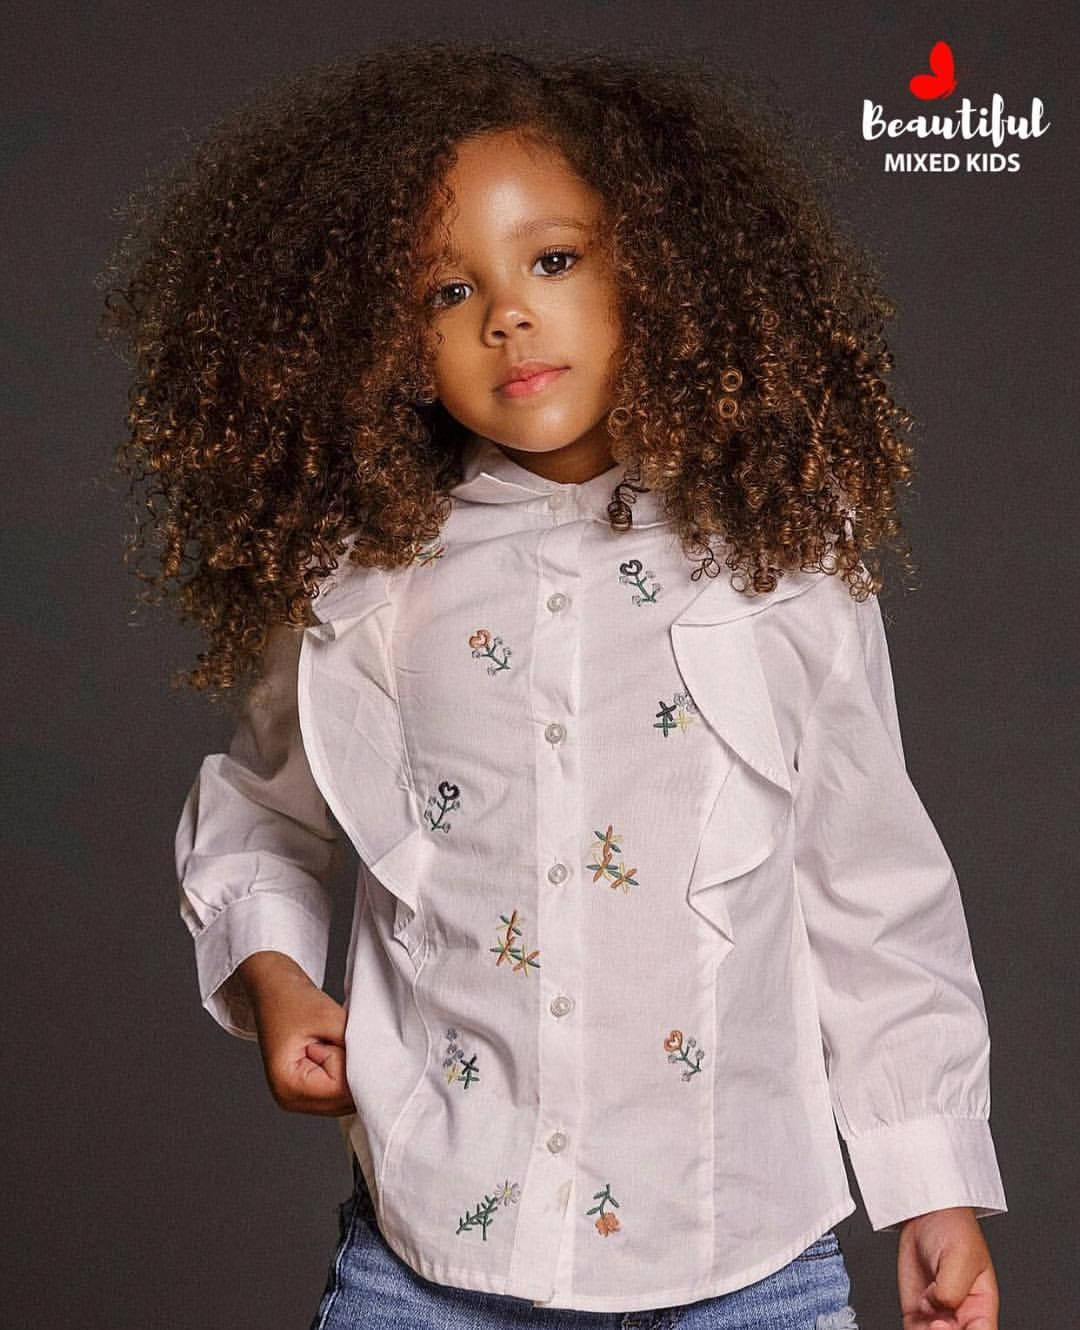 Olivia Jamaican Scandinavian Omg And Mommy Dm For A Instant Feature Follow Beautifulmixedkids Mixed Kids Kids Fashion Girl Cute Baby Pictures